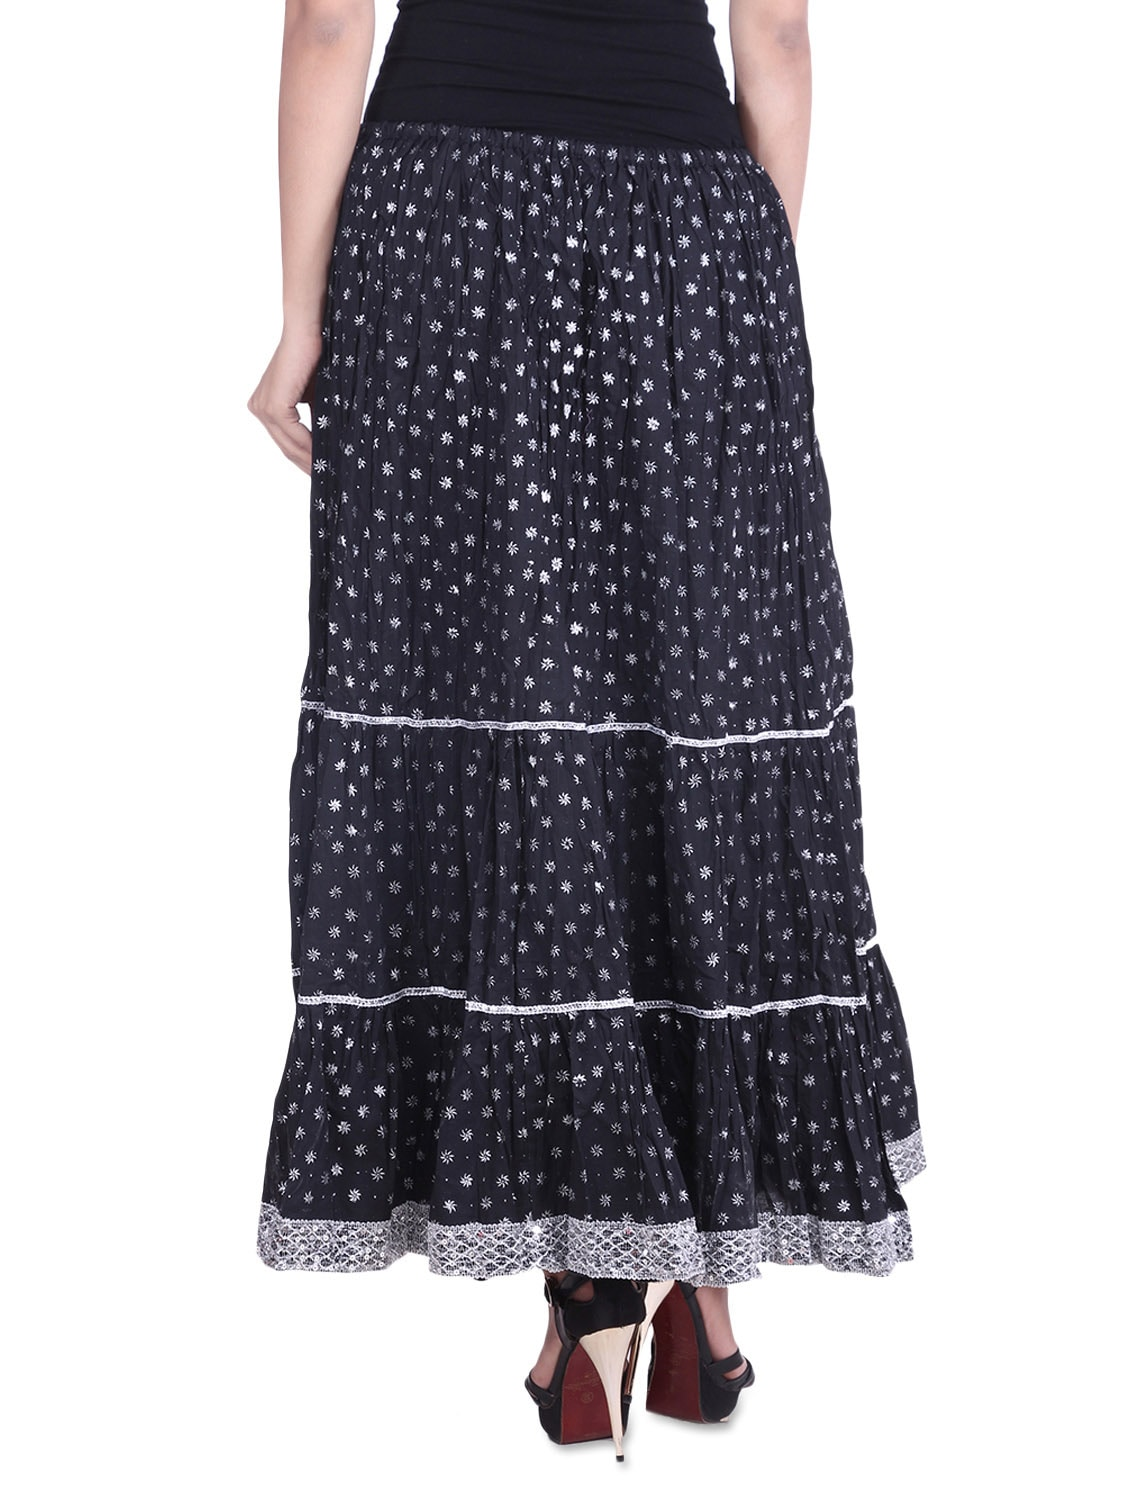 77e046e4ee Buy Black Cotton Printed N Sequined Gathered Skirt for Women from Soundarya  for ₹799 at 20% off | 2019 Limeroad.com